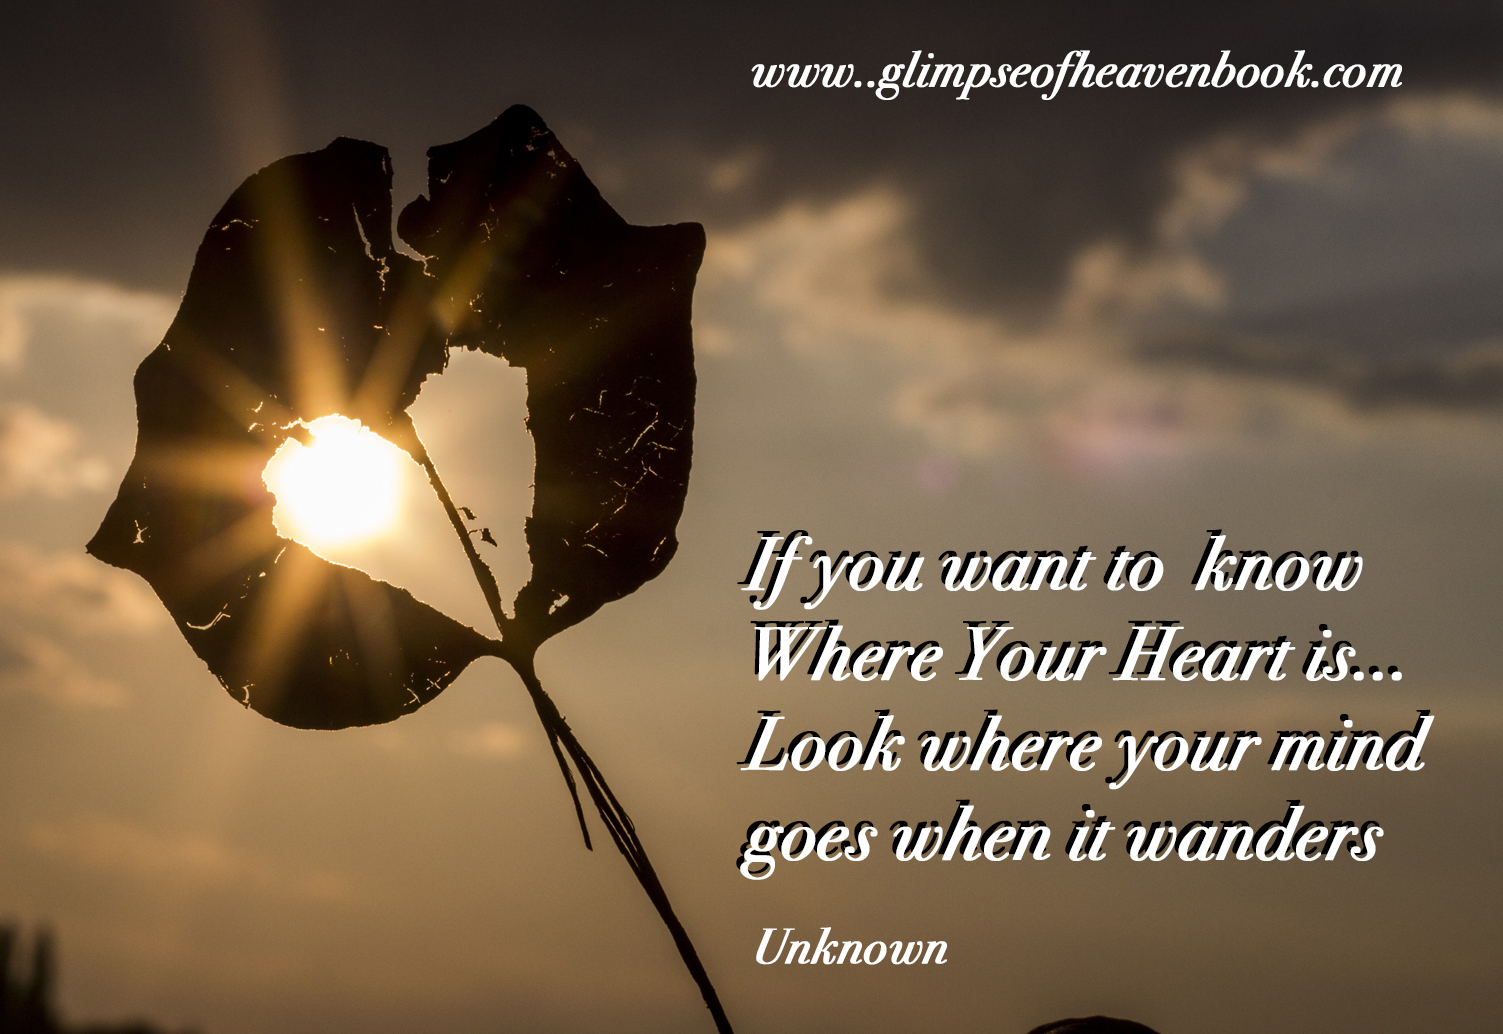 If You Want To Know Where Your Heart Us Sun 622740 A Glimpse Of